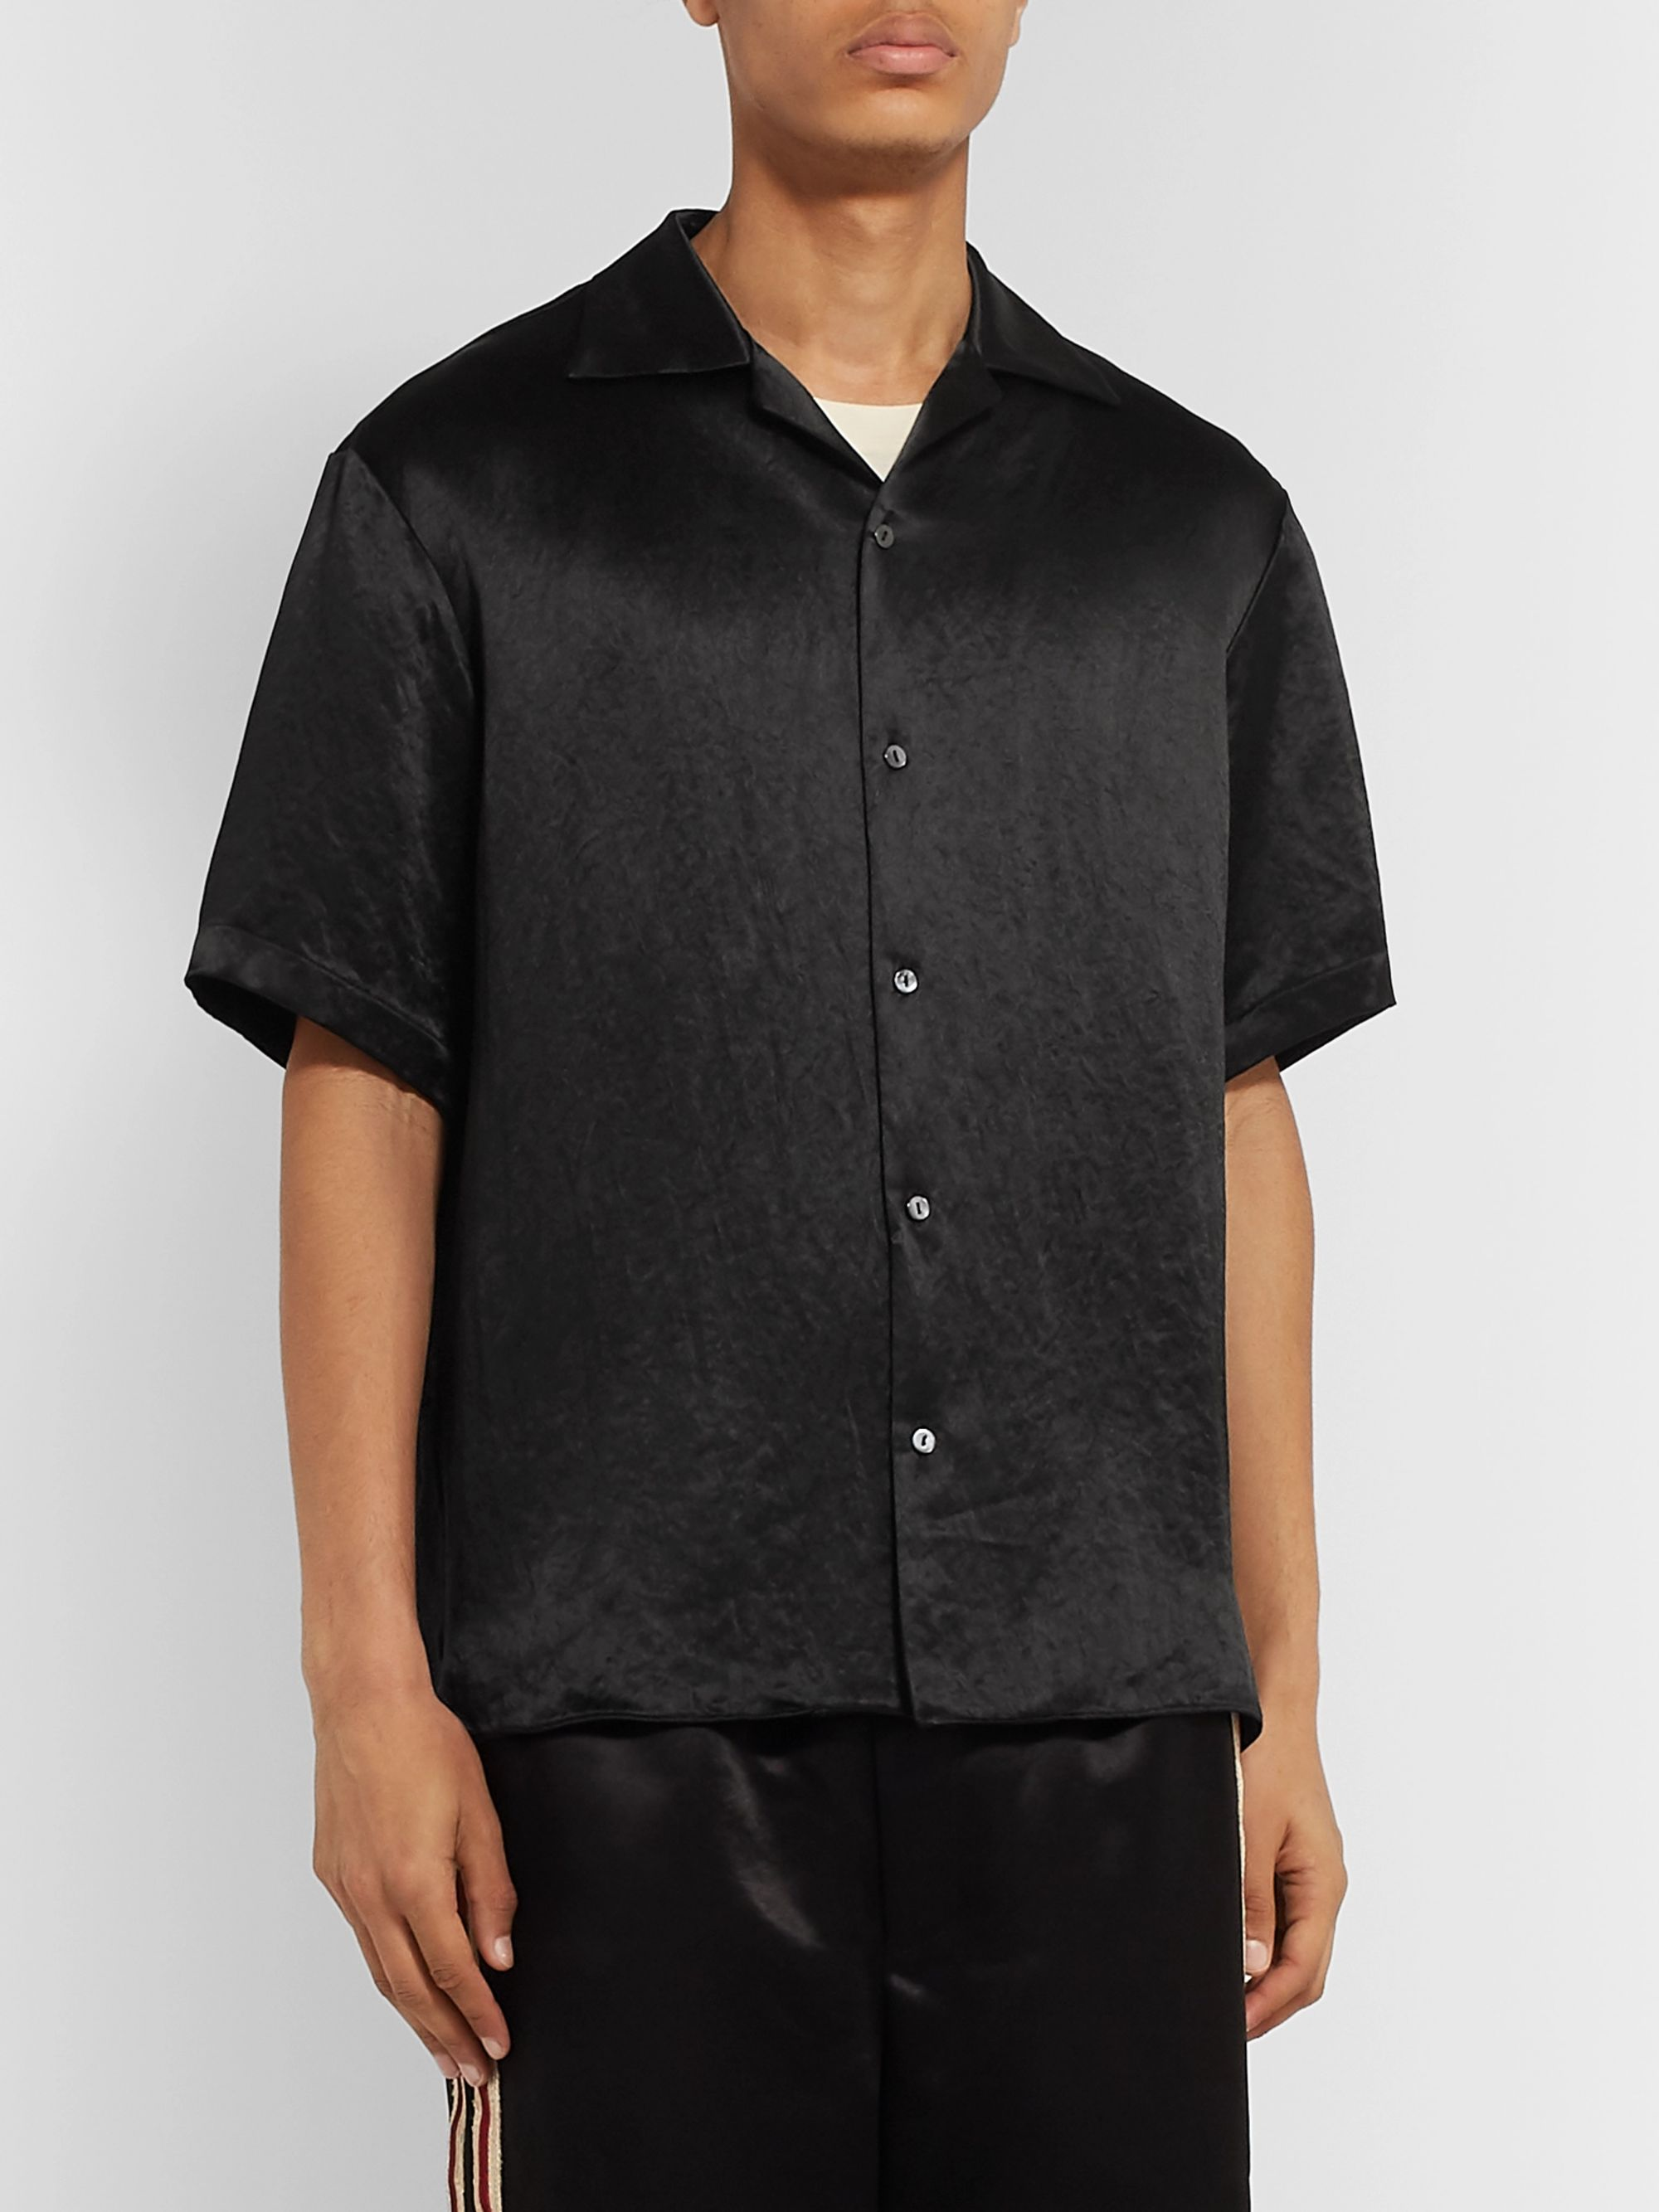 Gucci Camp-Collar Embellished Satin Shirt